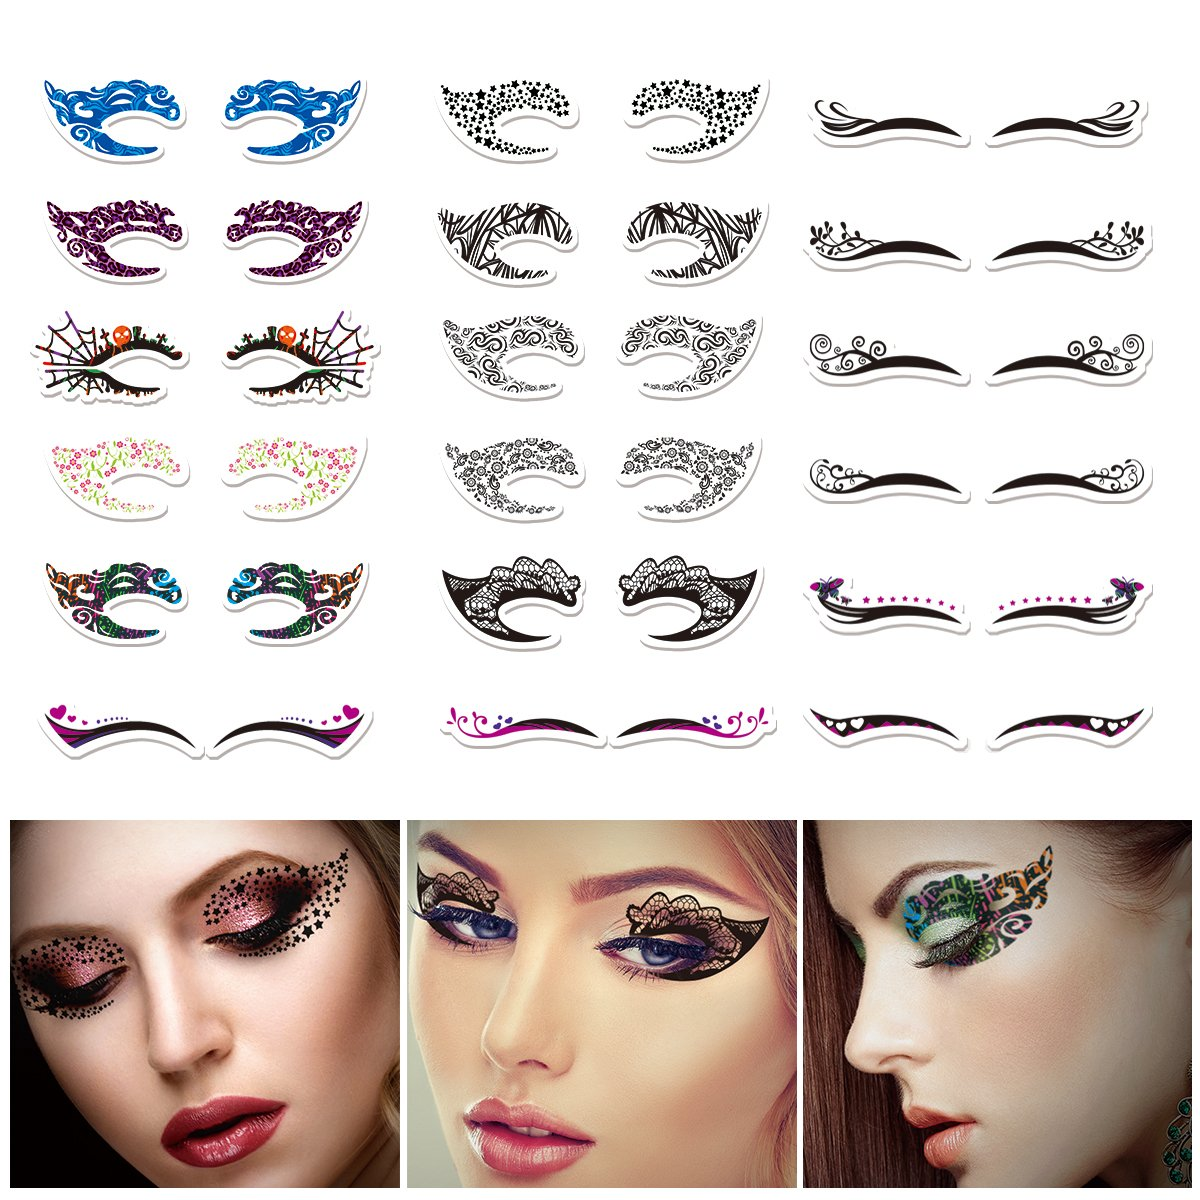 Temporary Eye Tattoo  ETEREAUTY 18 Pairs Eye Tattoo Stickers with Waterproof Eyeshadow and Eyeliner Designs